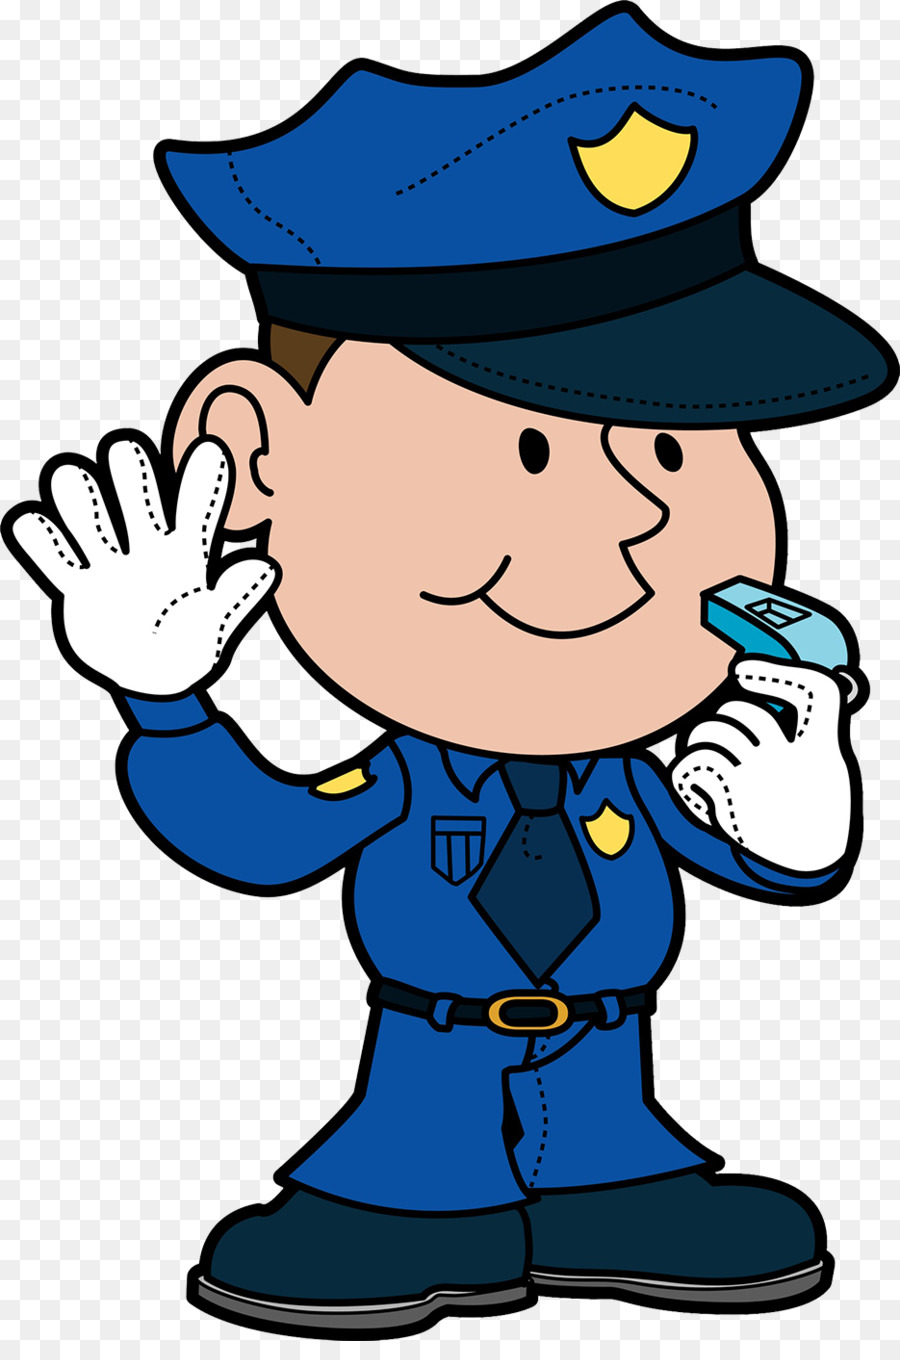 Policeman clipart. Police officer free content